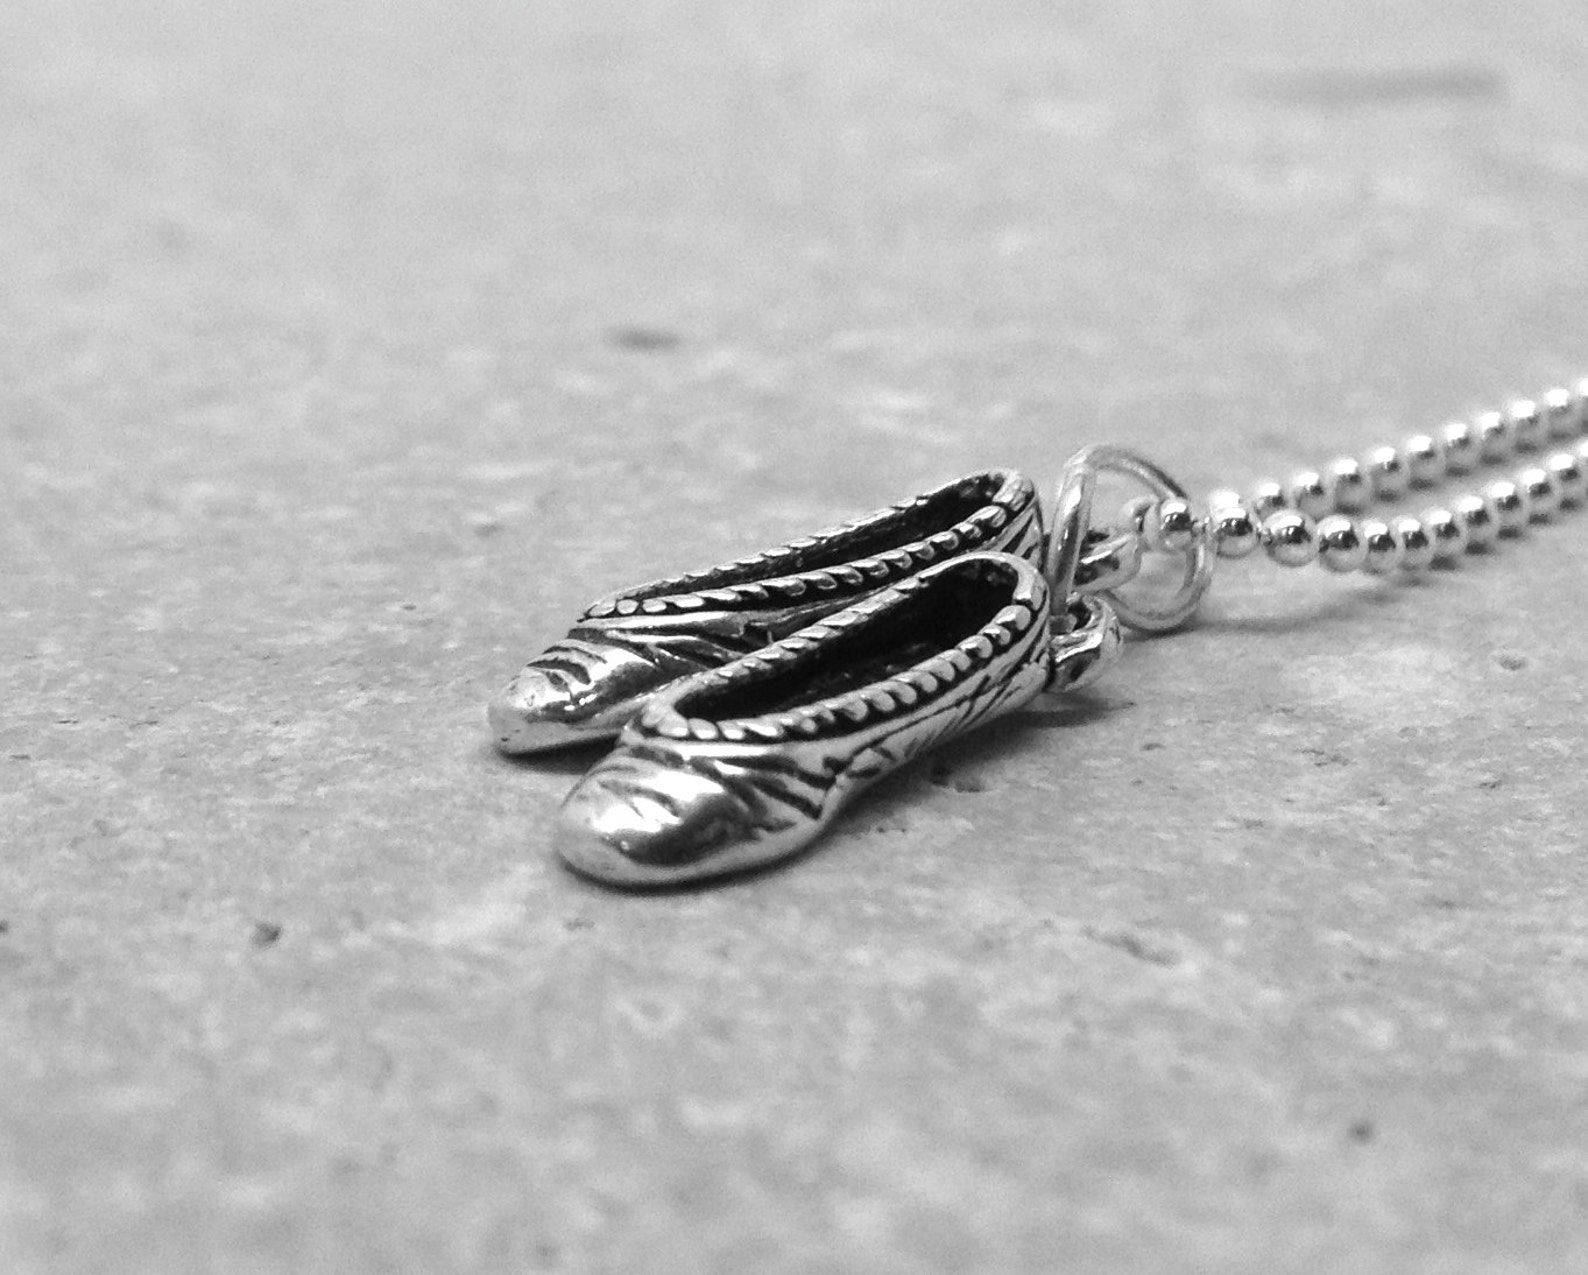 ballet necklace, ballet jewelry, ballet pendant, ballet slipper necklace, charm necklace, sterling silver jewelry, sterling silv